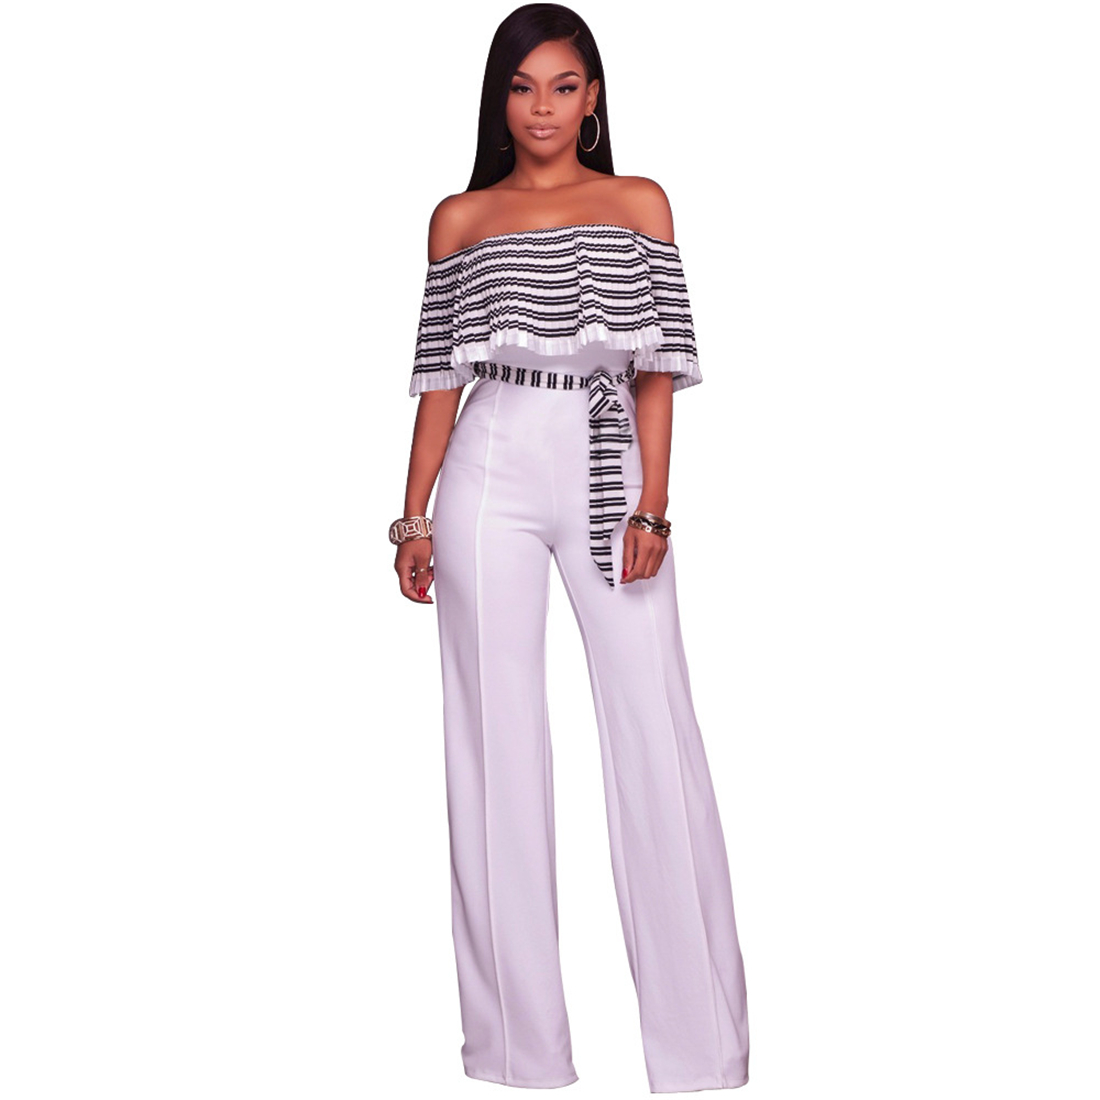 Women 2017 Fashion Ladies Office Jumpsuit Romper Pleated Slash Neck Wide leg Long pants Playsuit Summer